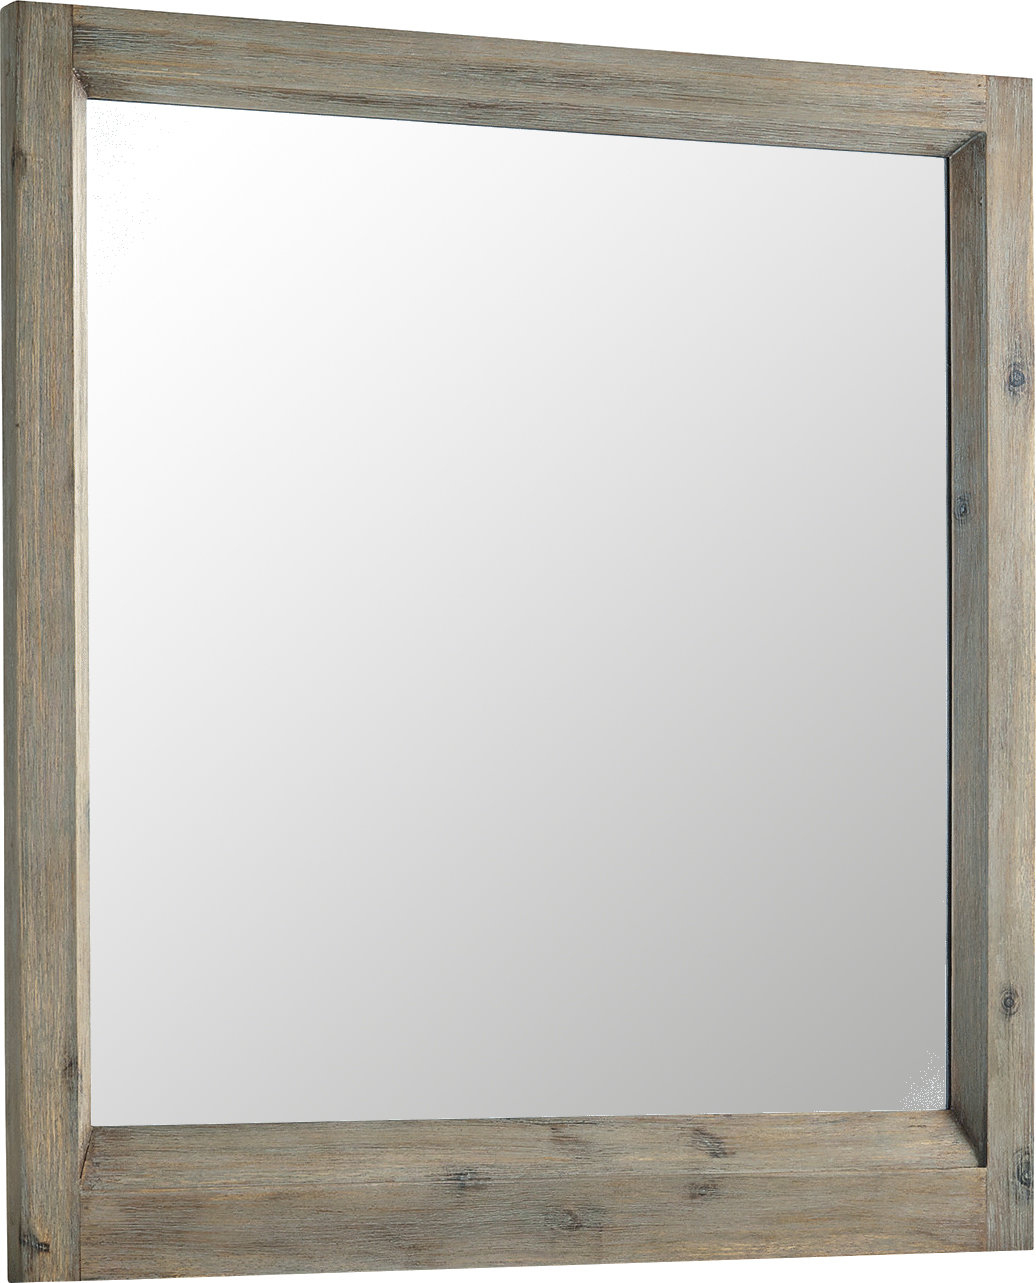 Descartes Dresser Mirror Within Epinal Shabby Elegance Wall Mirrors (View 7 of 30)